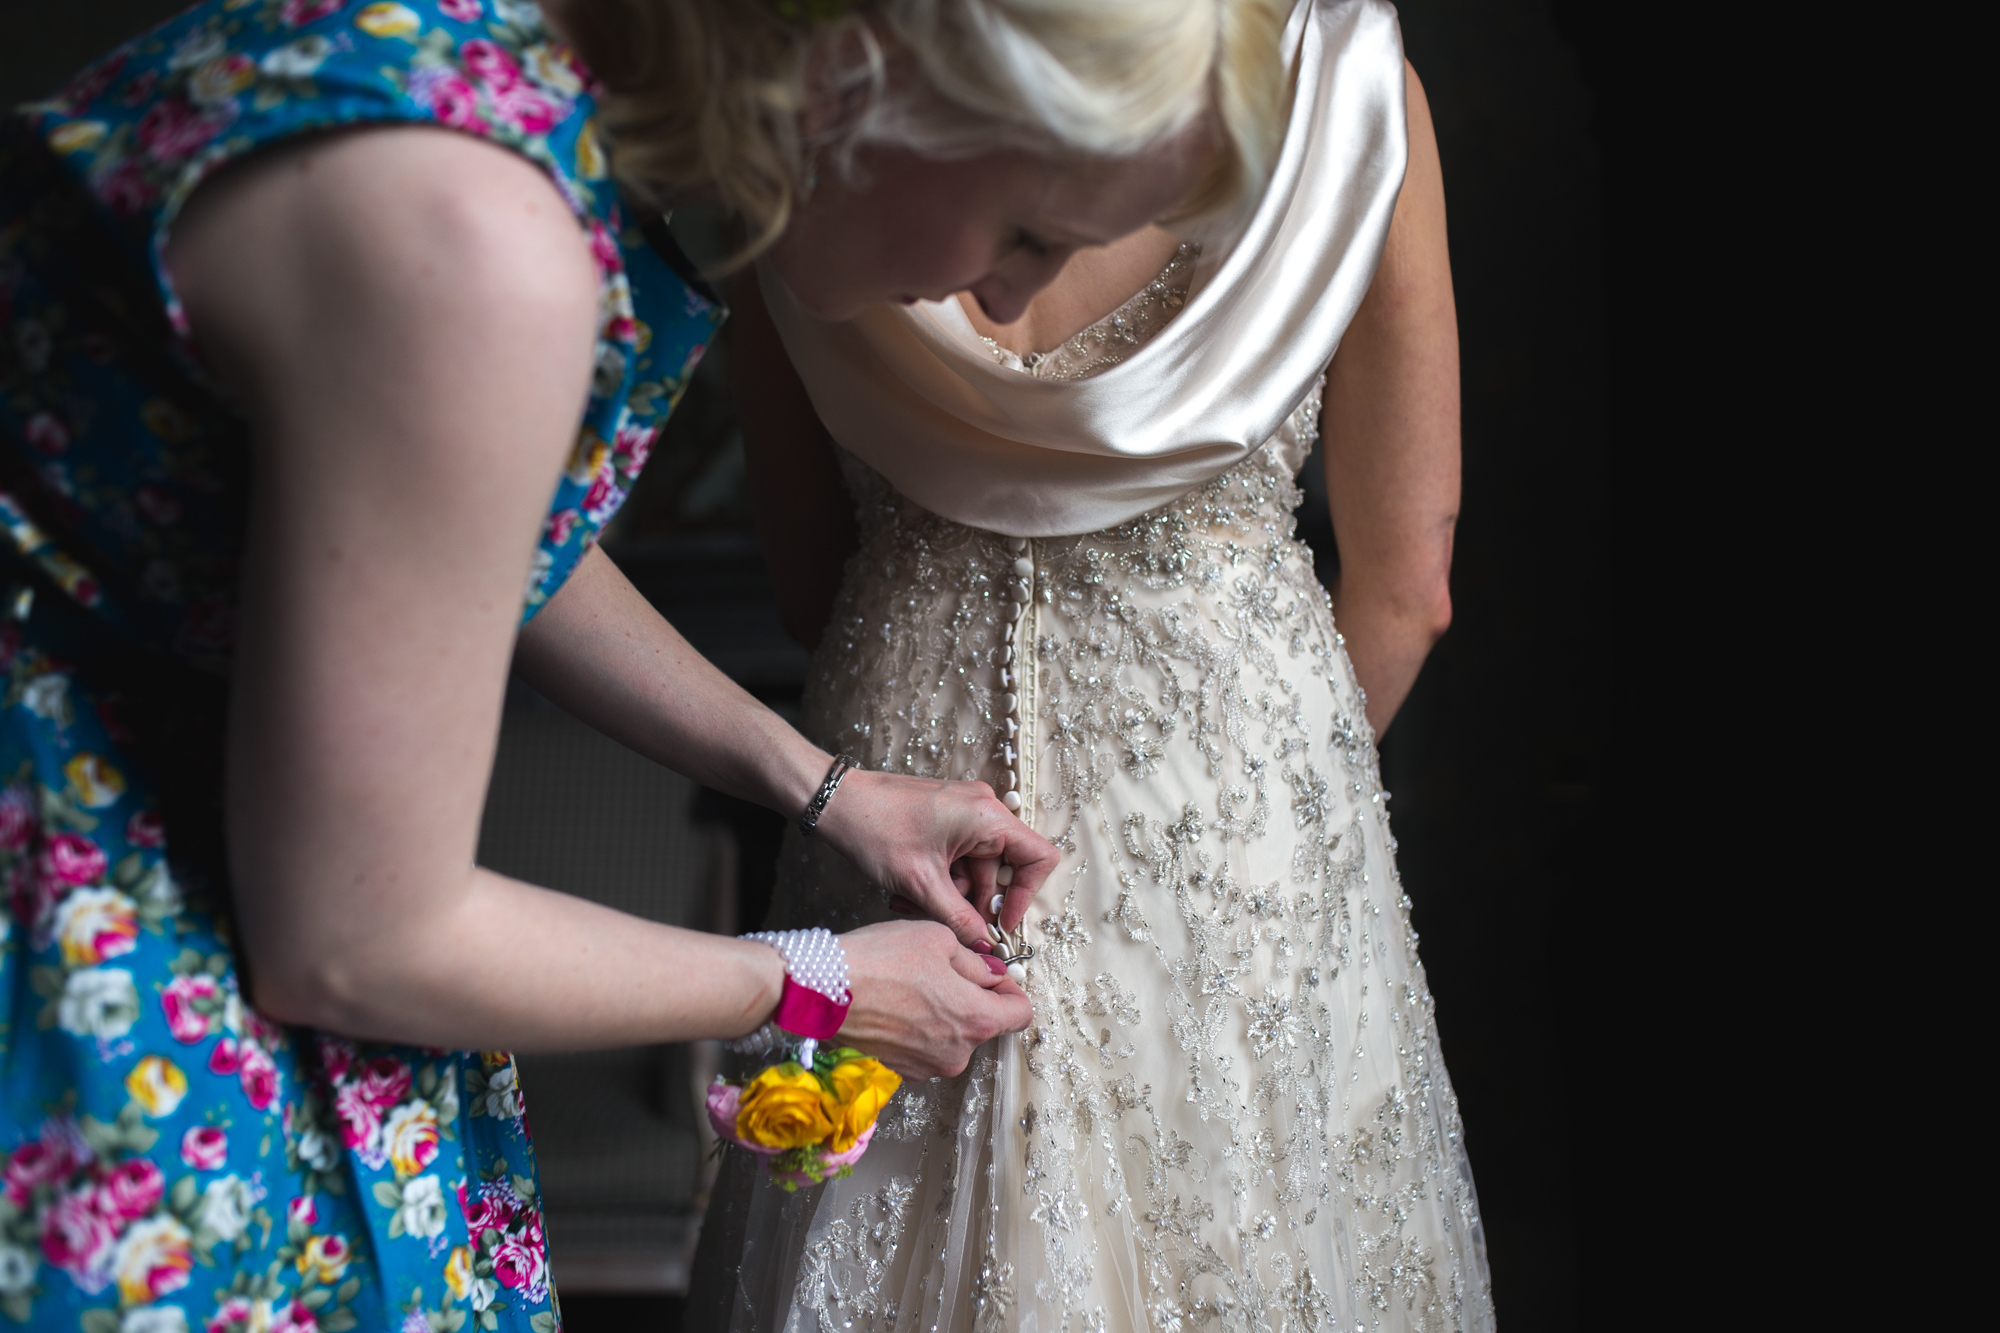 wynyard hall wedding photographer duncan mccall-1011.jpg